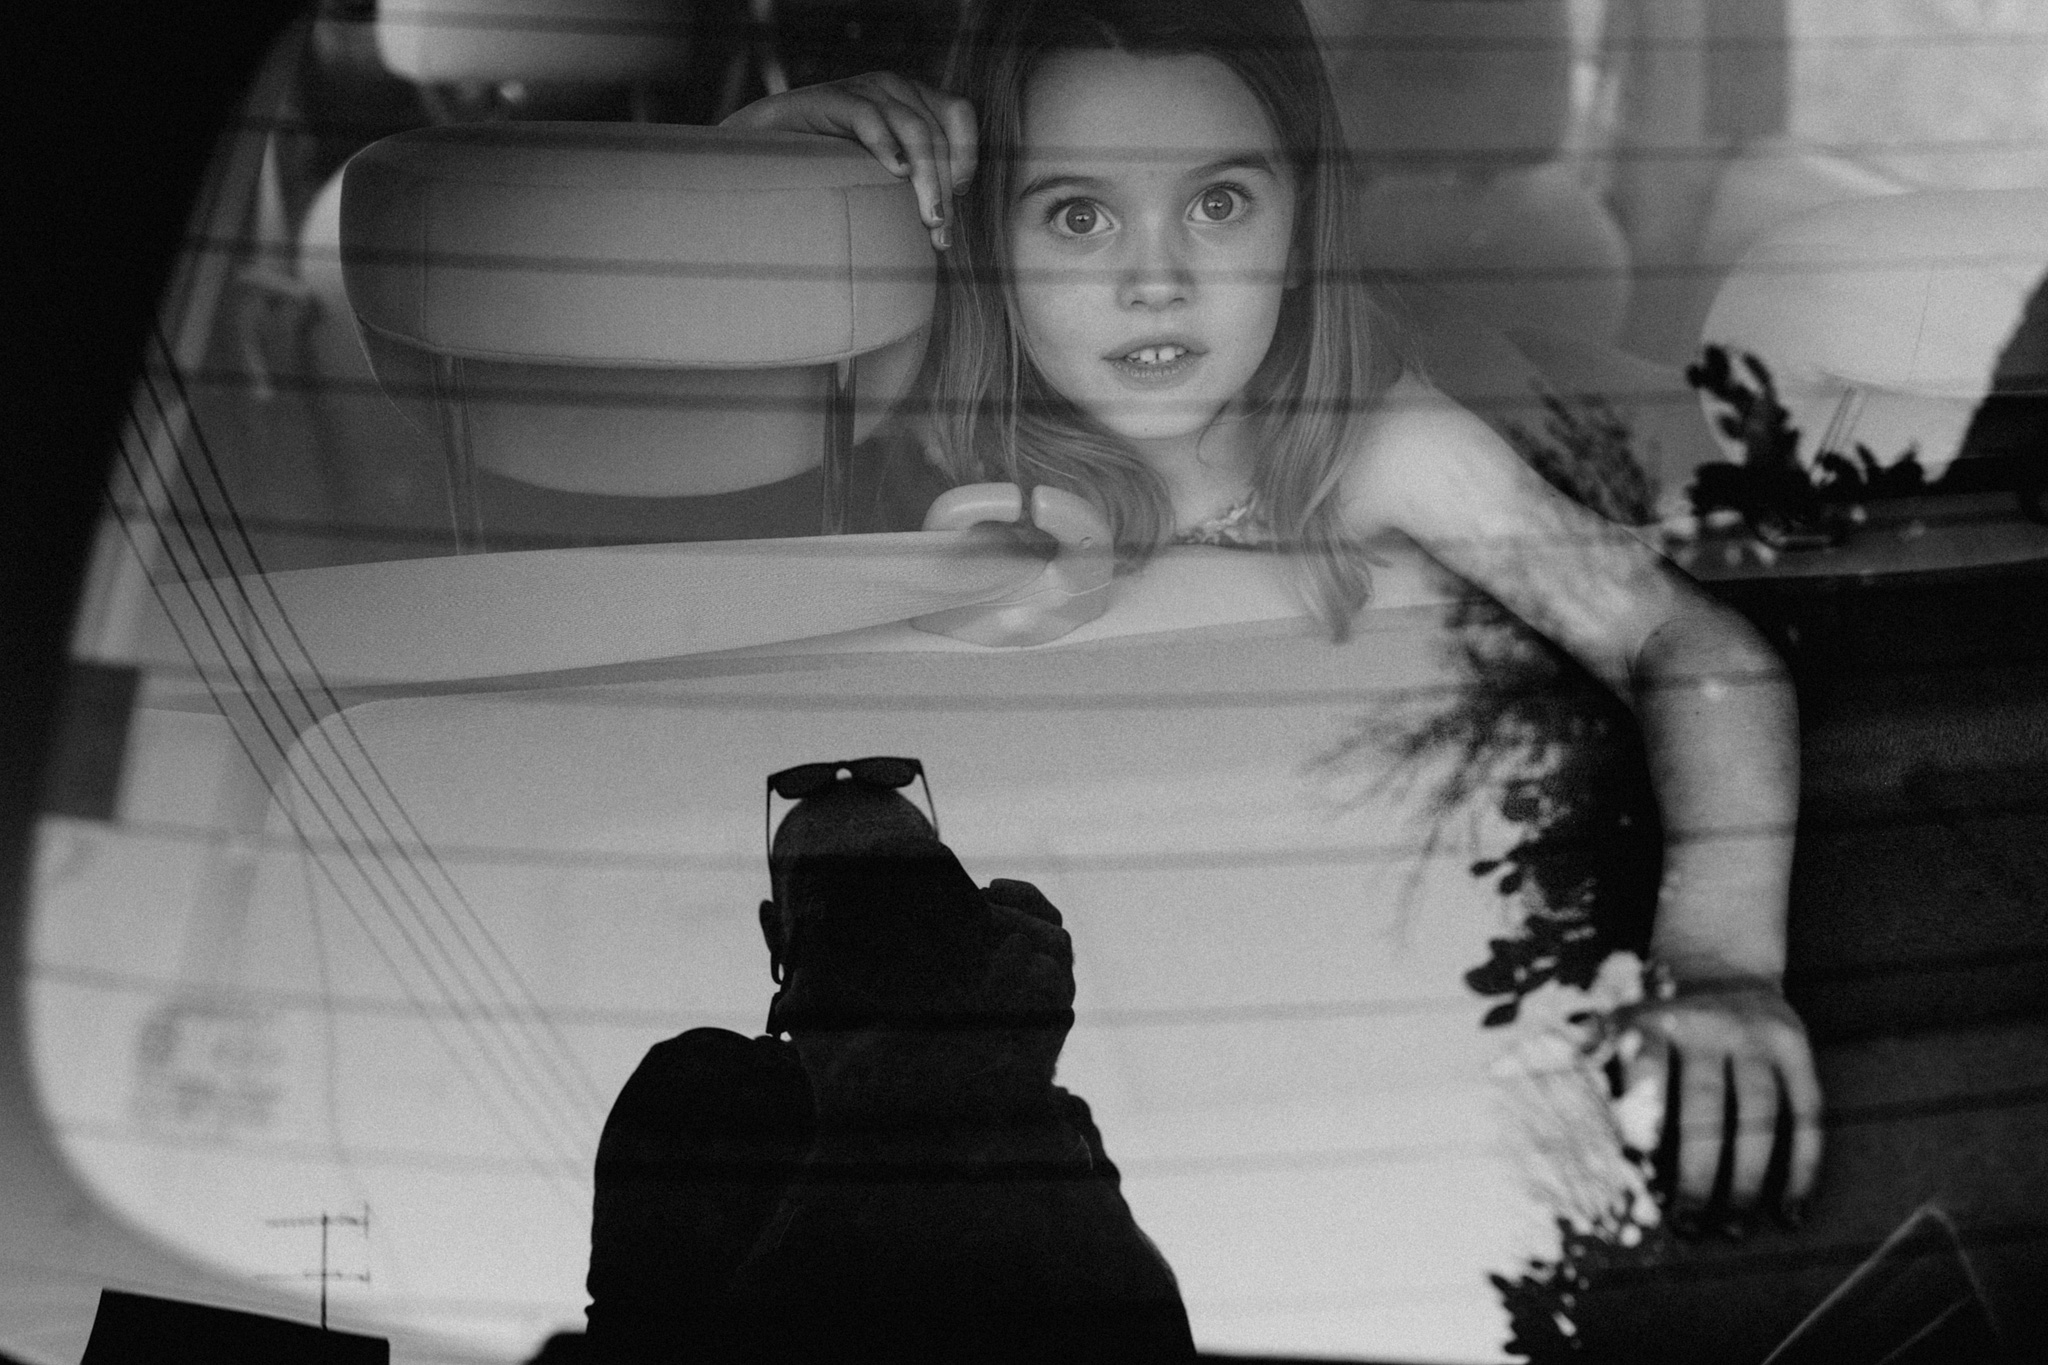 Little girl in car looking through backwindow